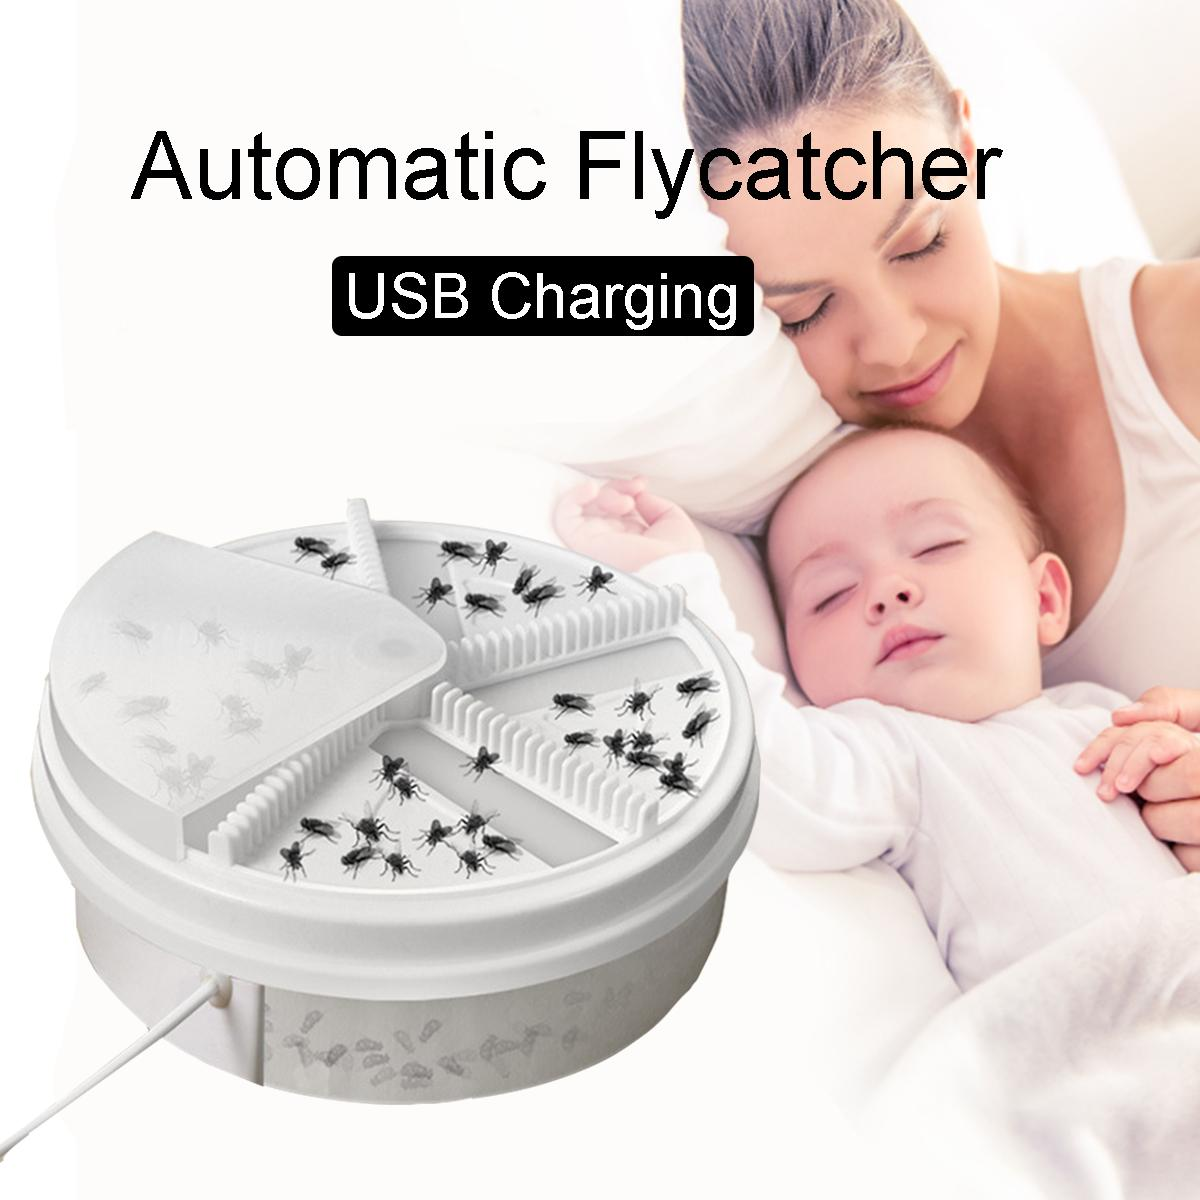 Automatic Flycatcher Electric Rechargeable Fly Trap Pest Device Insect  Catcher Indoor Mosquitoes Insects Mosquito Killer for Kids Baby